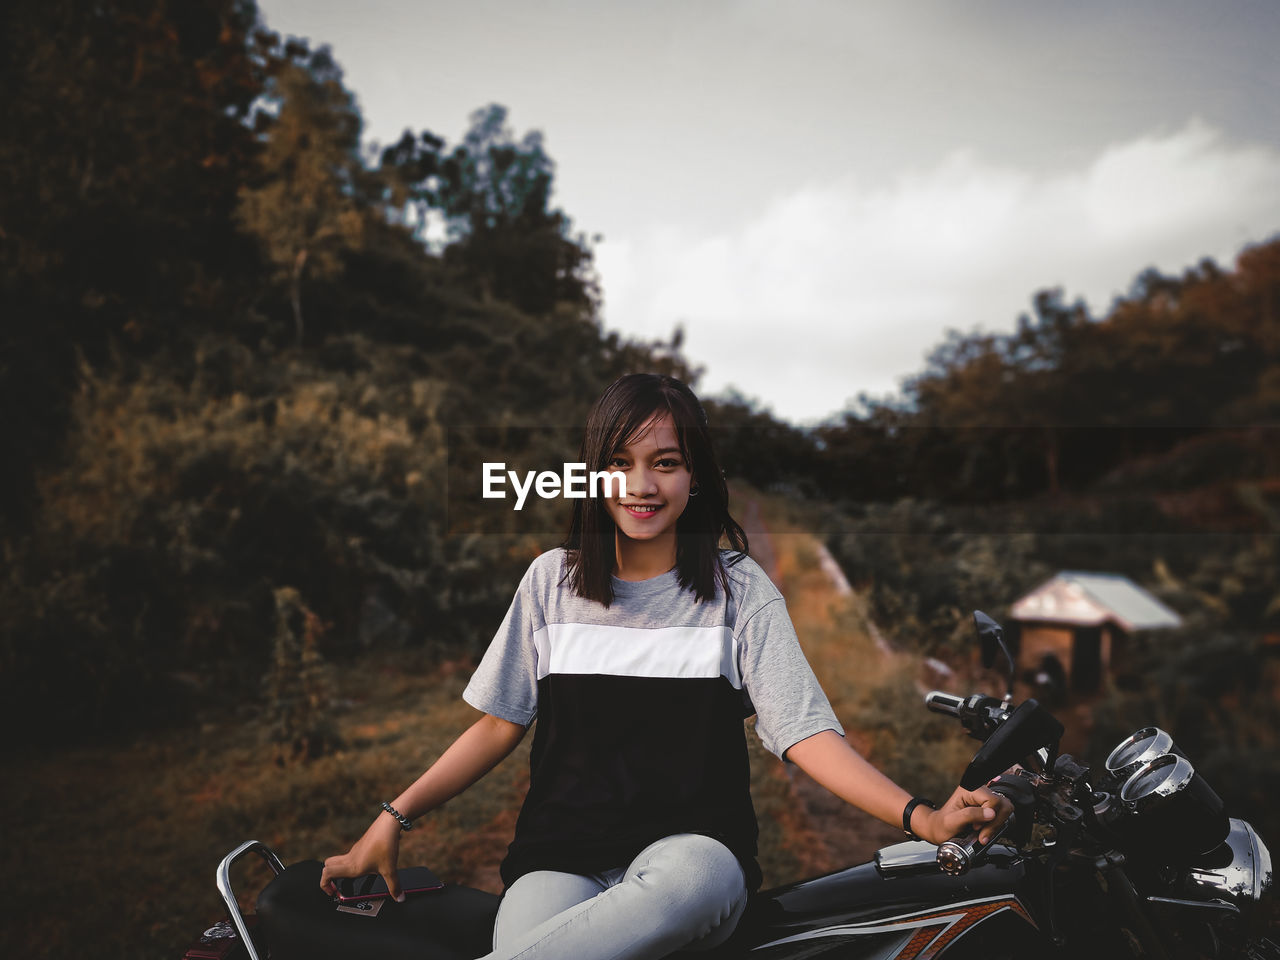 Portrait of smiling woman sitting on her motocycle